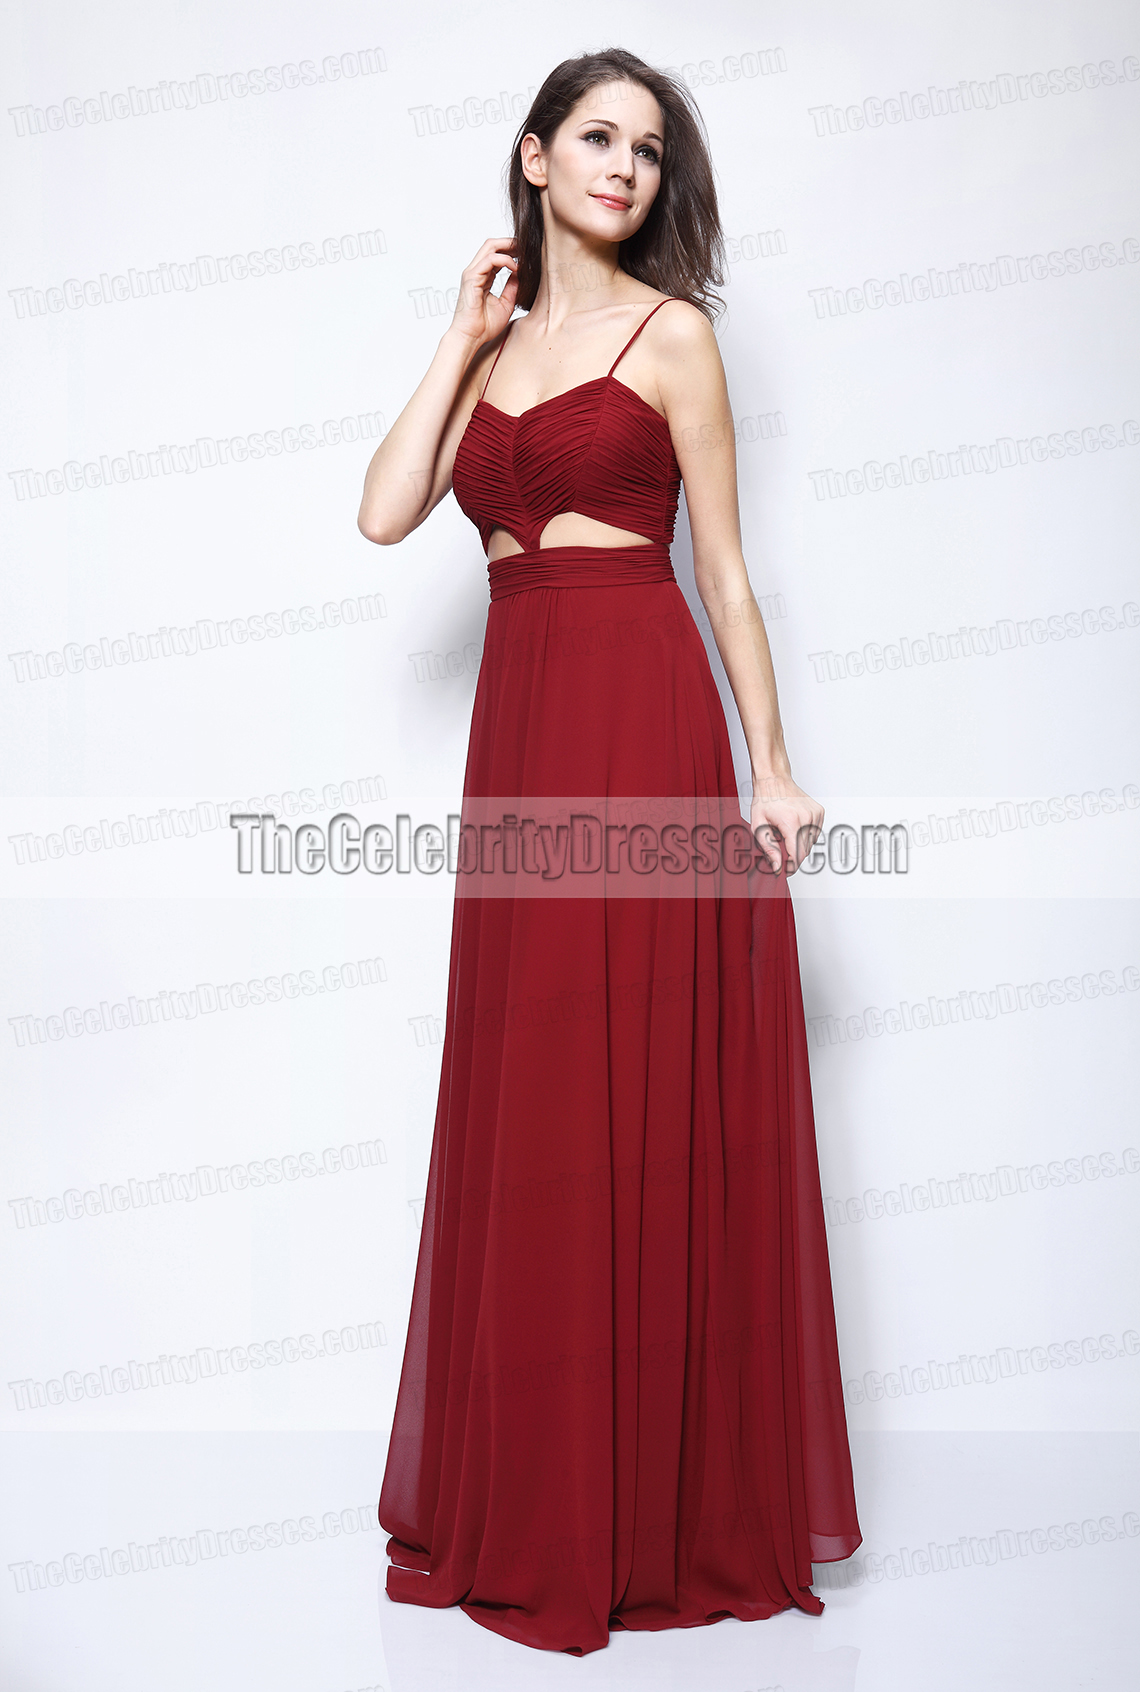 28dc492e3 Blake Lively Burgundy Cut Out Prom Dress Gossip Girl Fashion -  TheCelebrityDresses